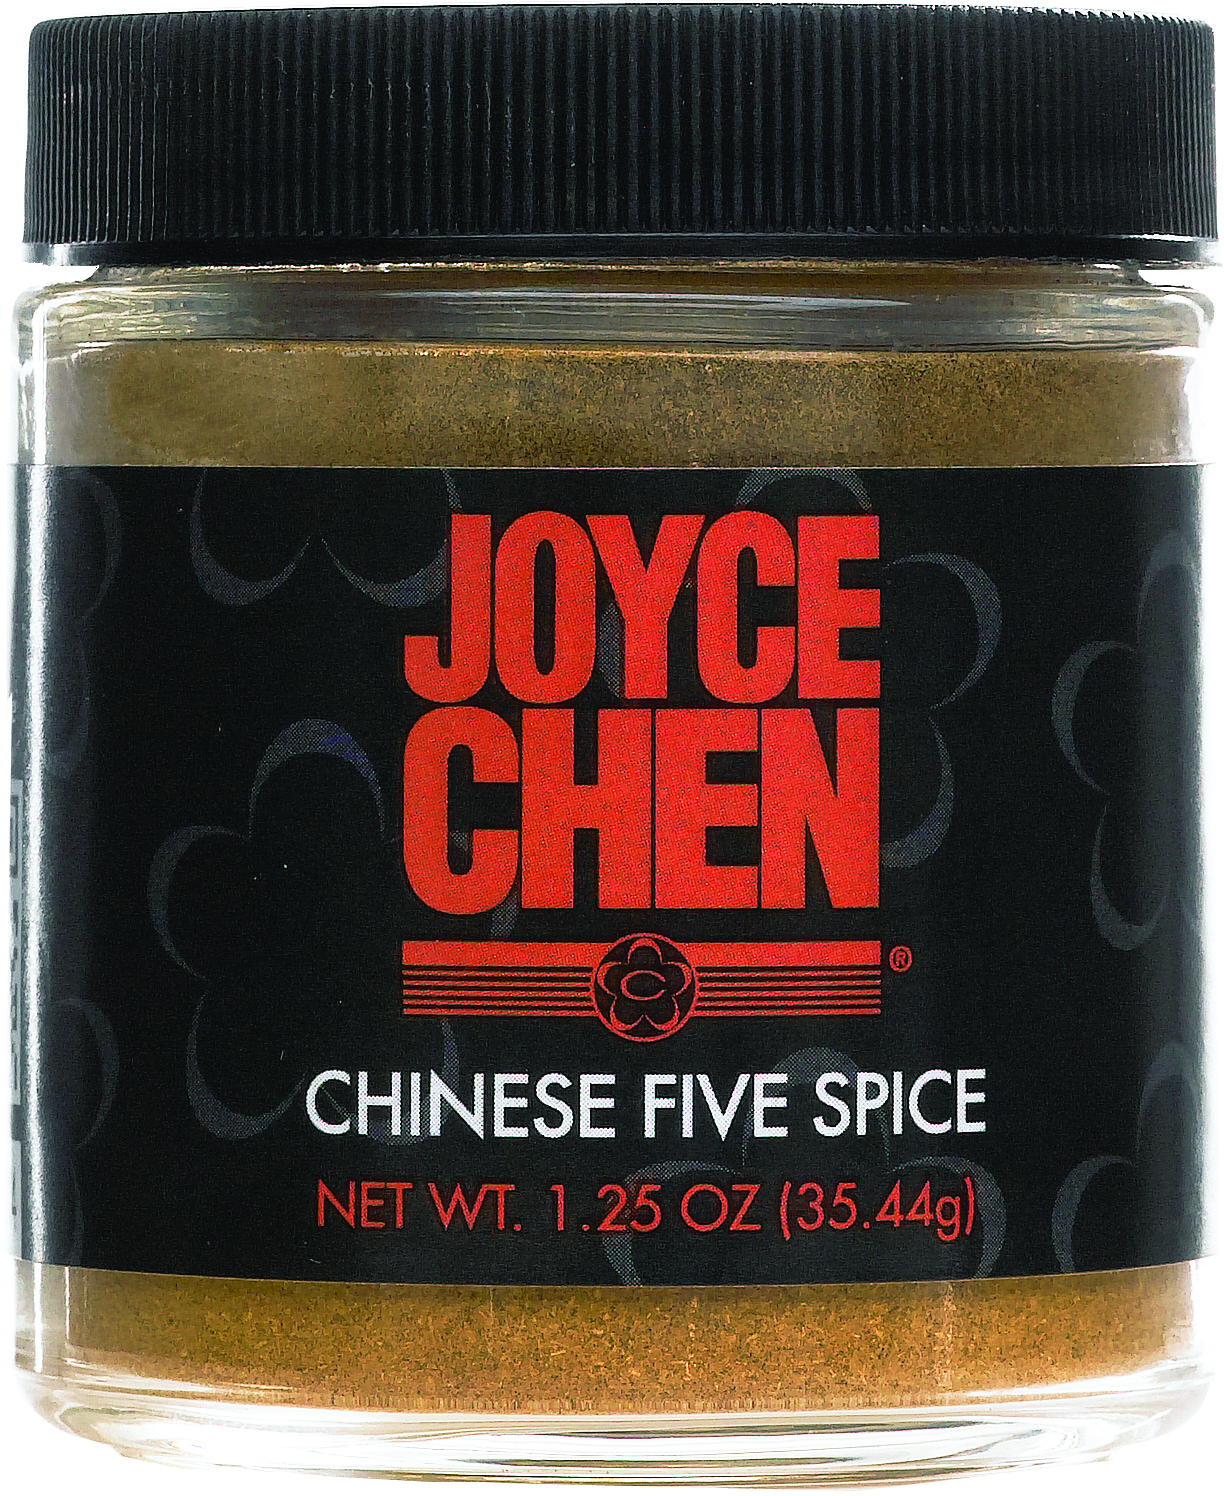 Joyce Chen Chinese Five Spice